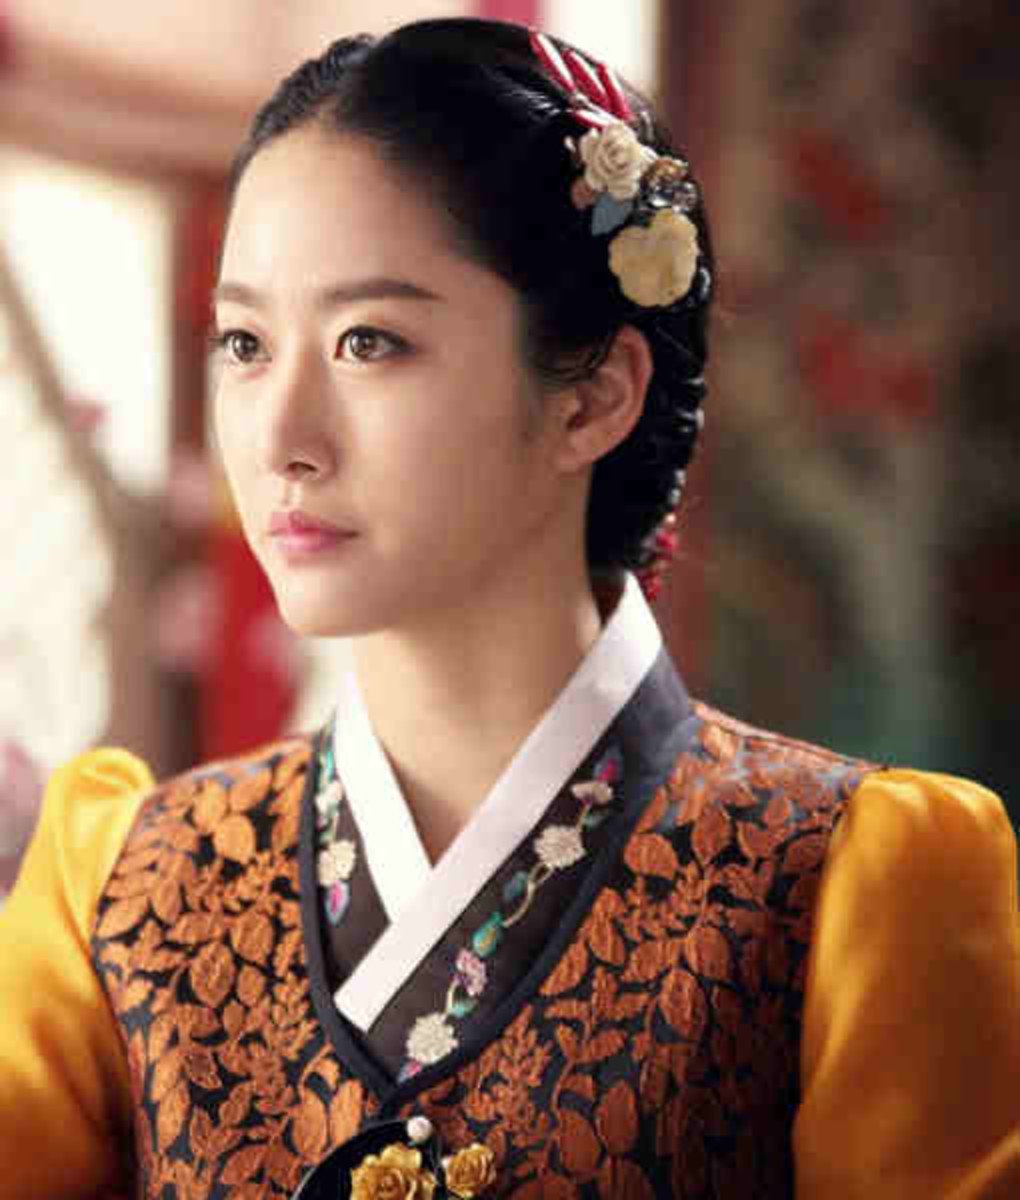 Jeon Hye-bin as Choi Hye-won in Gunman in Joseon